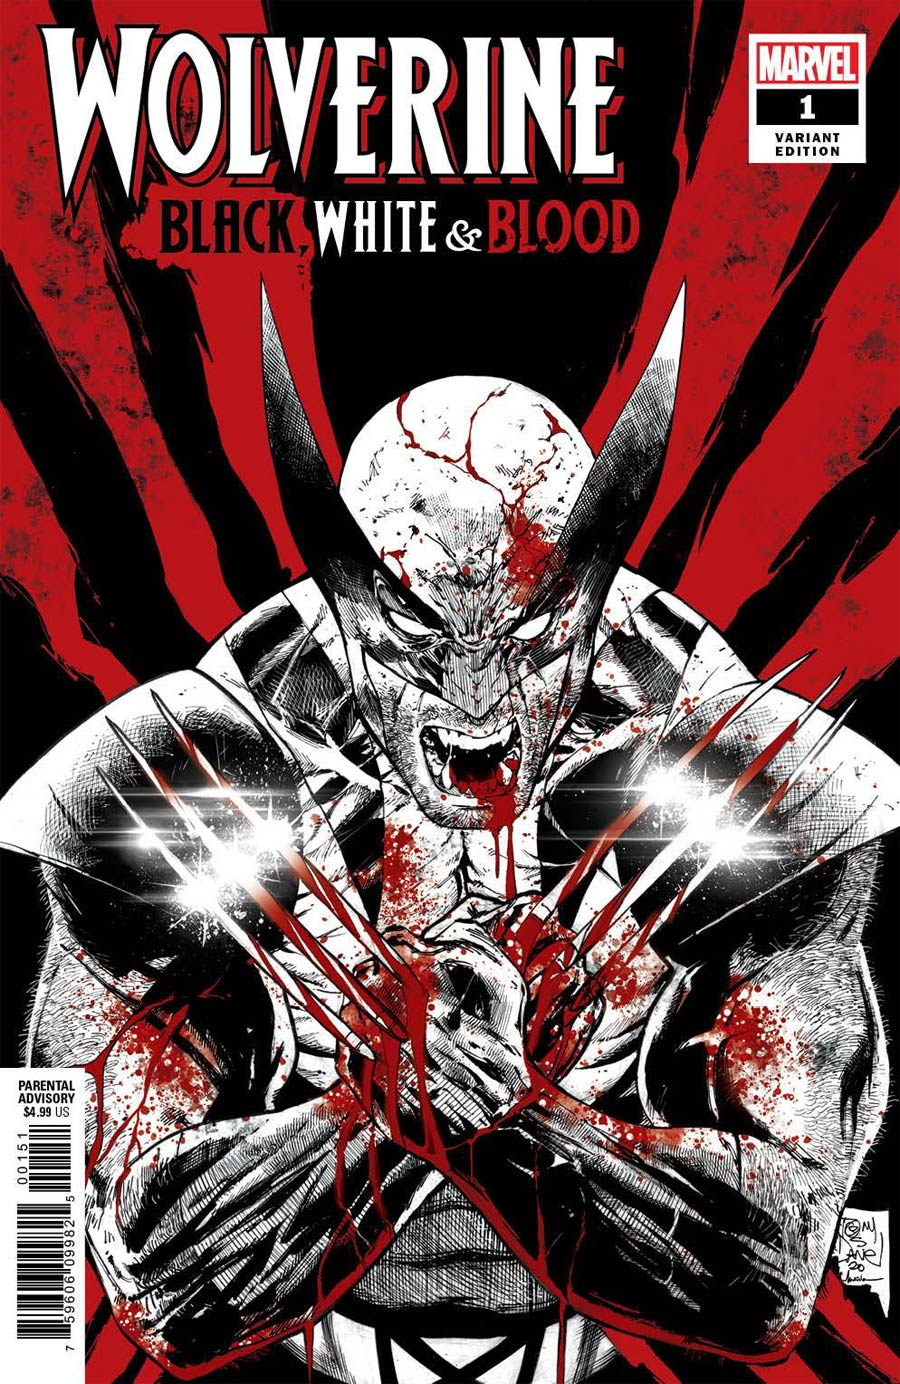 Wolverine Black White & Blood #1 Cover C Incentive Tony S Daniel Variant Cover